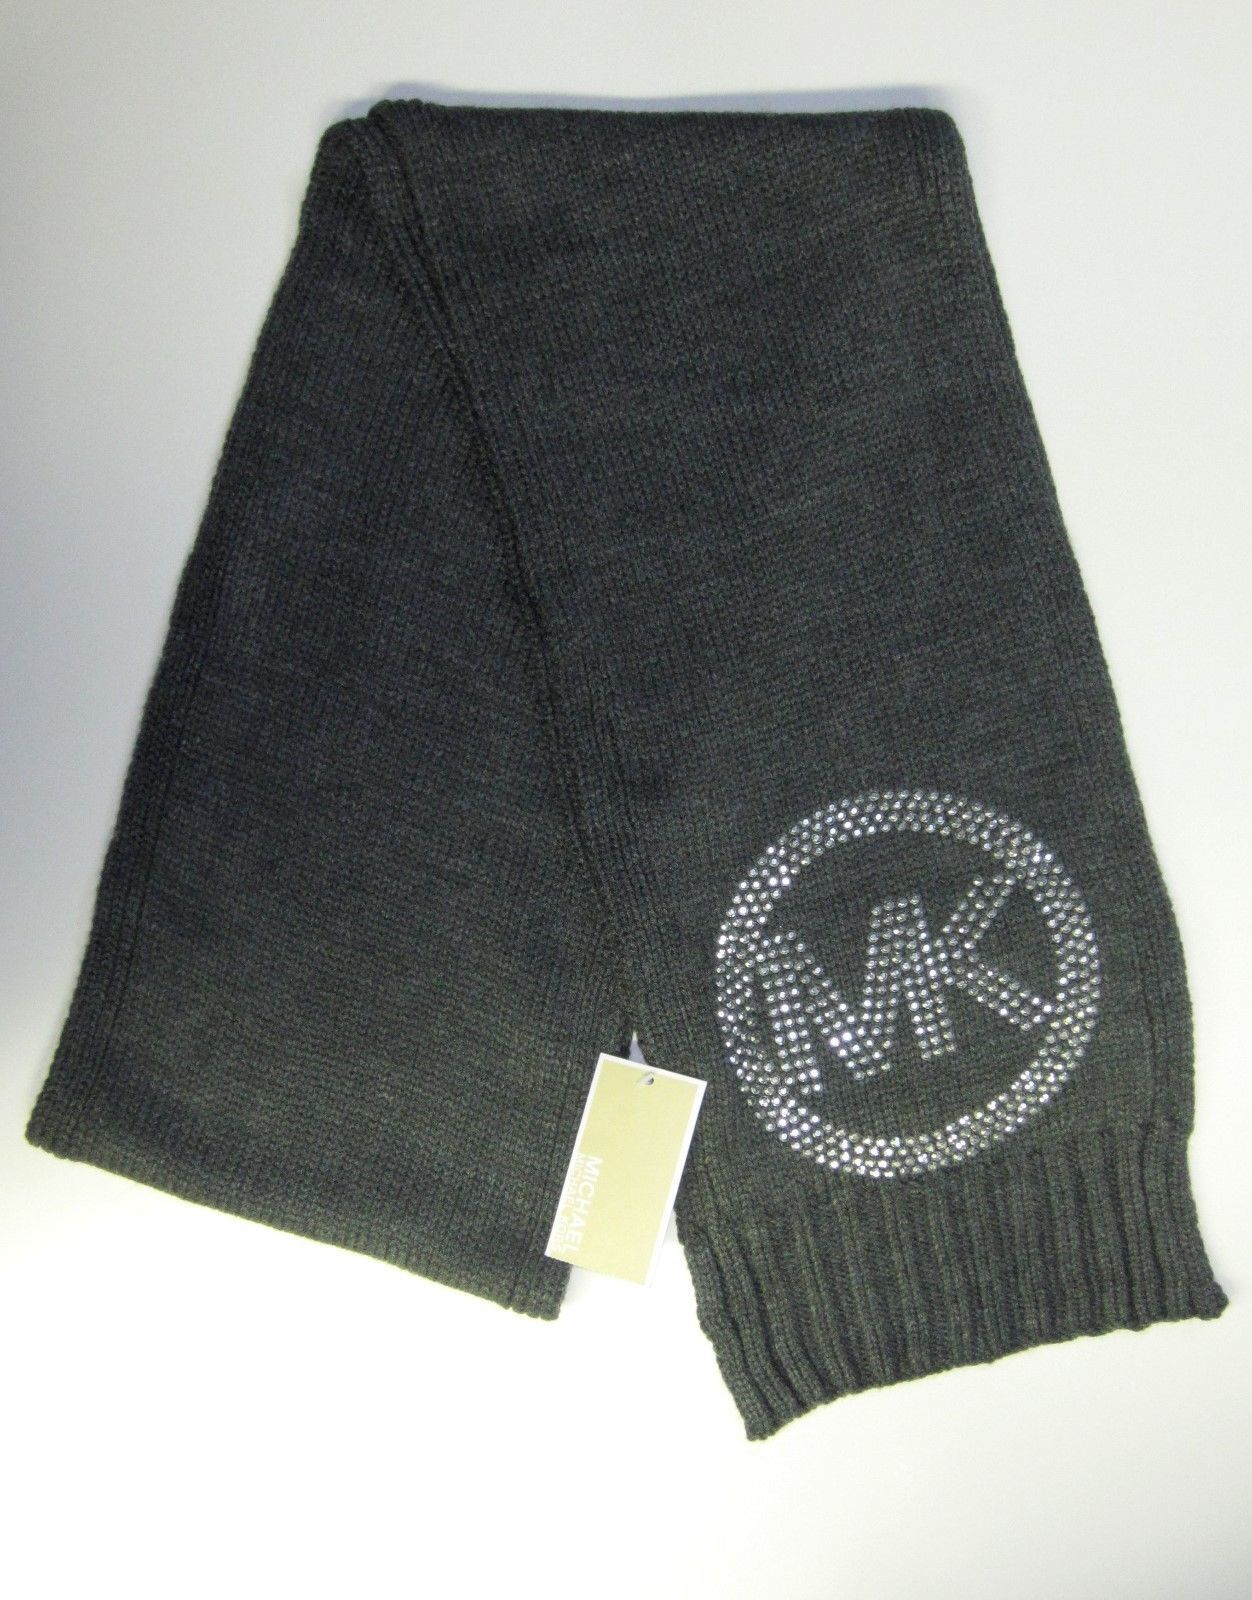 456dc0eb8 NWT Michael Kors Women's Gray Knit Scarf and 50 similar items